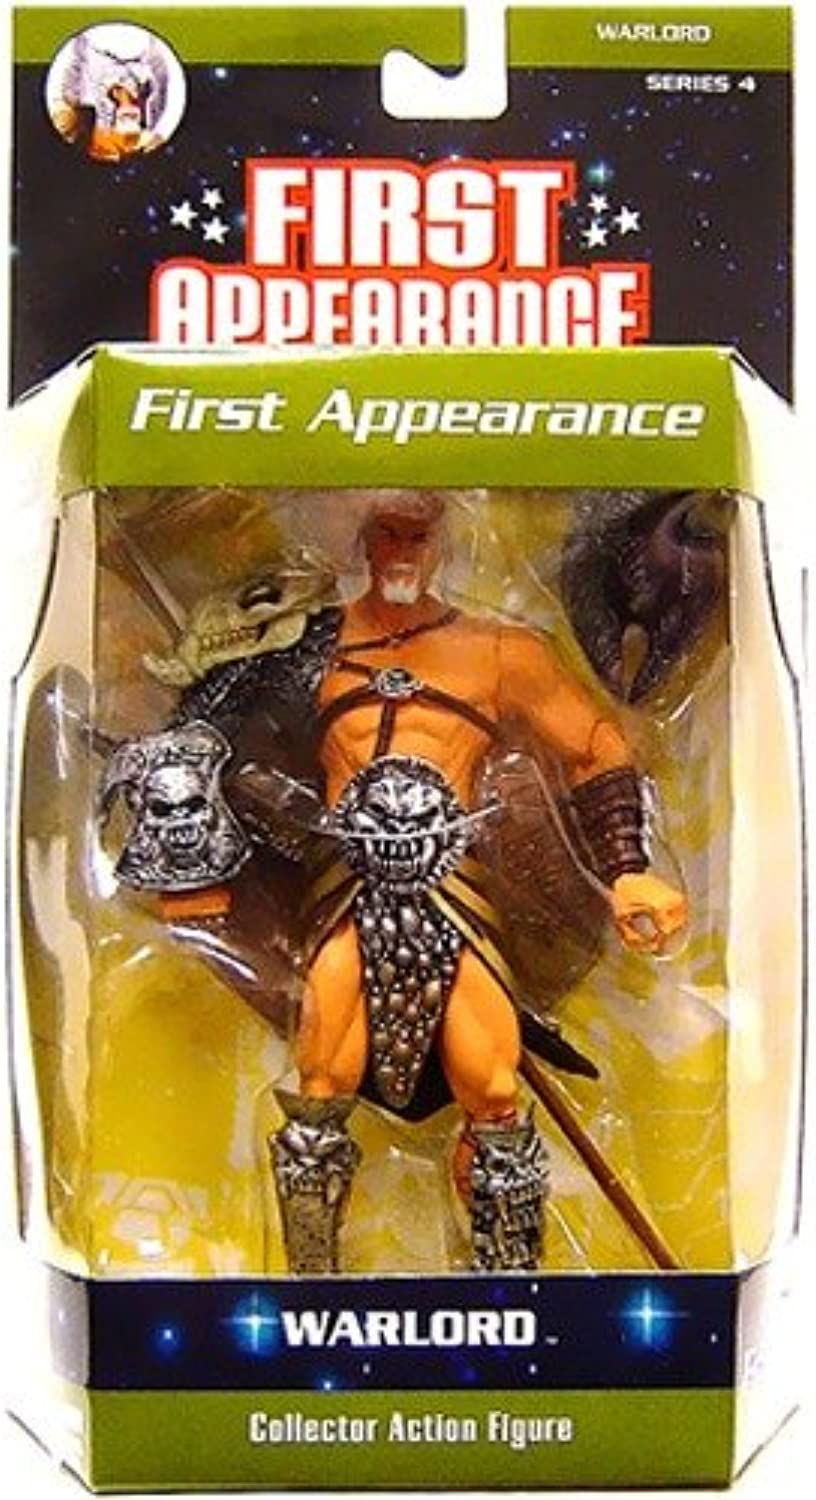 First Appearance Series 4  Warlord Action Figure by DC Comics